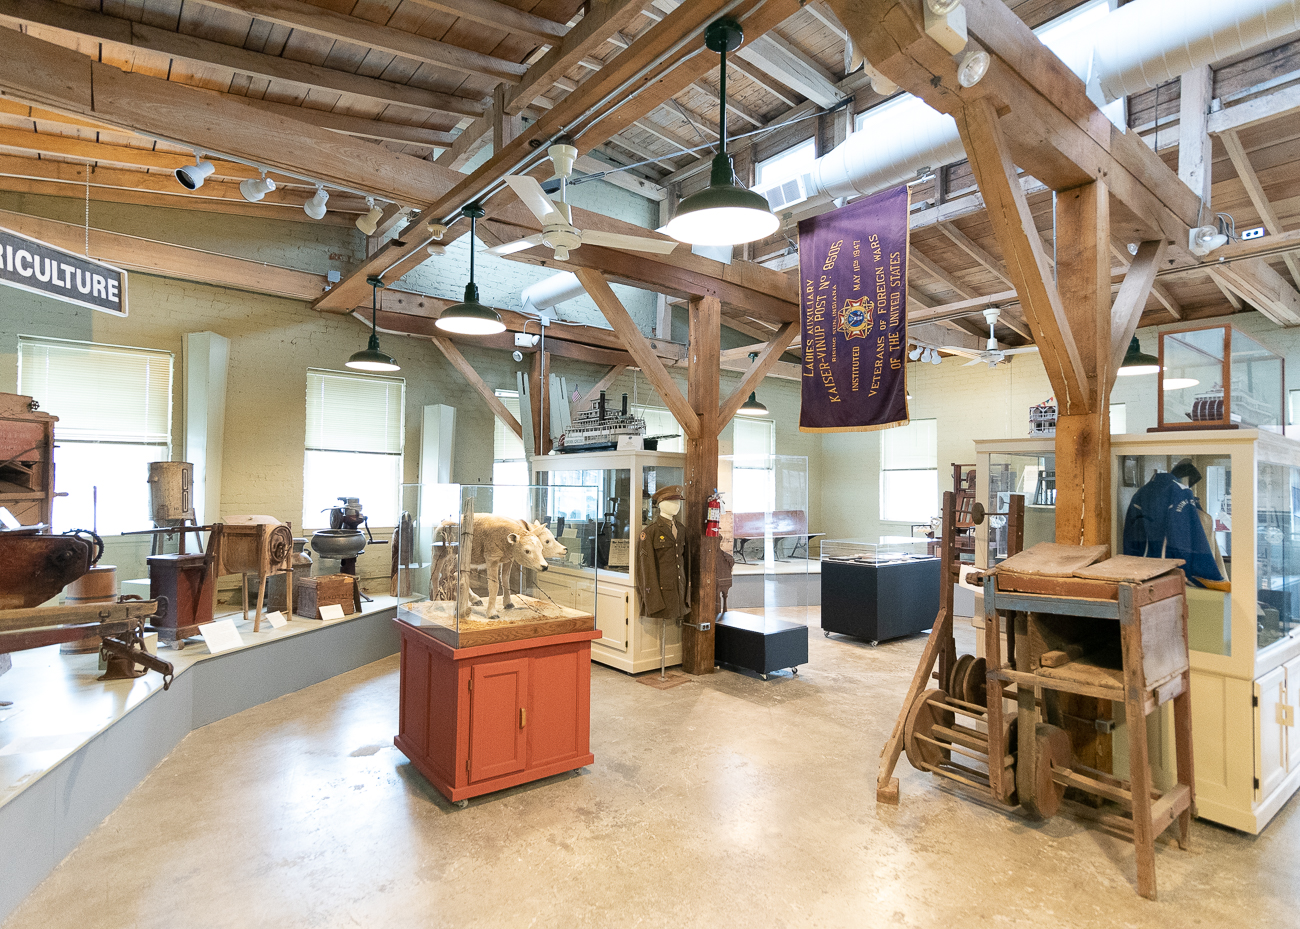 The Siekman Gallery houses a collection of artifacts and documents that tell the tale of early Indiana and Rising Sun/Ohio County. From examples of the plows that were made on-site in the 1800s to the original 1814 map used to divide the land into saleable parcels, there's a number of items in the collection that piece together the story of the area. / Image: Phil Armstrong, Cincinnati Refined // Published: 1.7.20